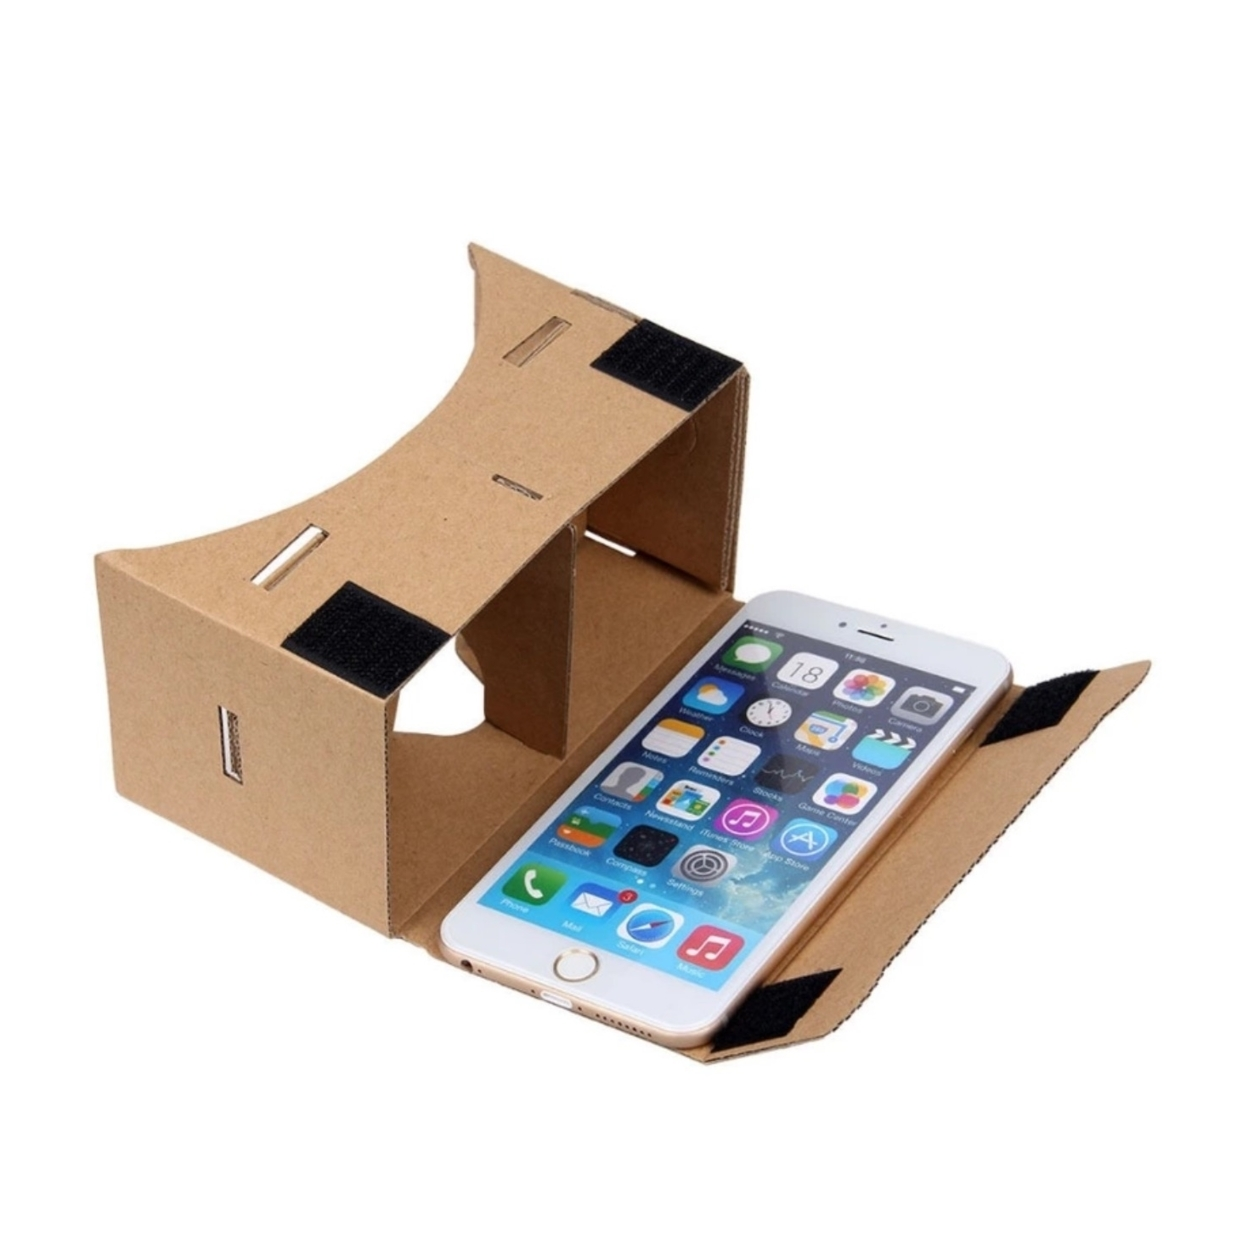 DIY VR 3D Google Mobile Phone Glasses for iPhone / Samsung / Google Nexus 6 56d2176c6a3d6f88598b4f1a